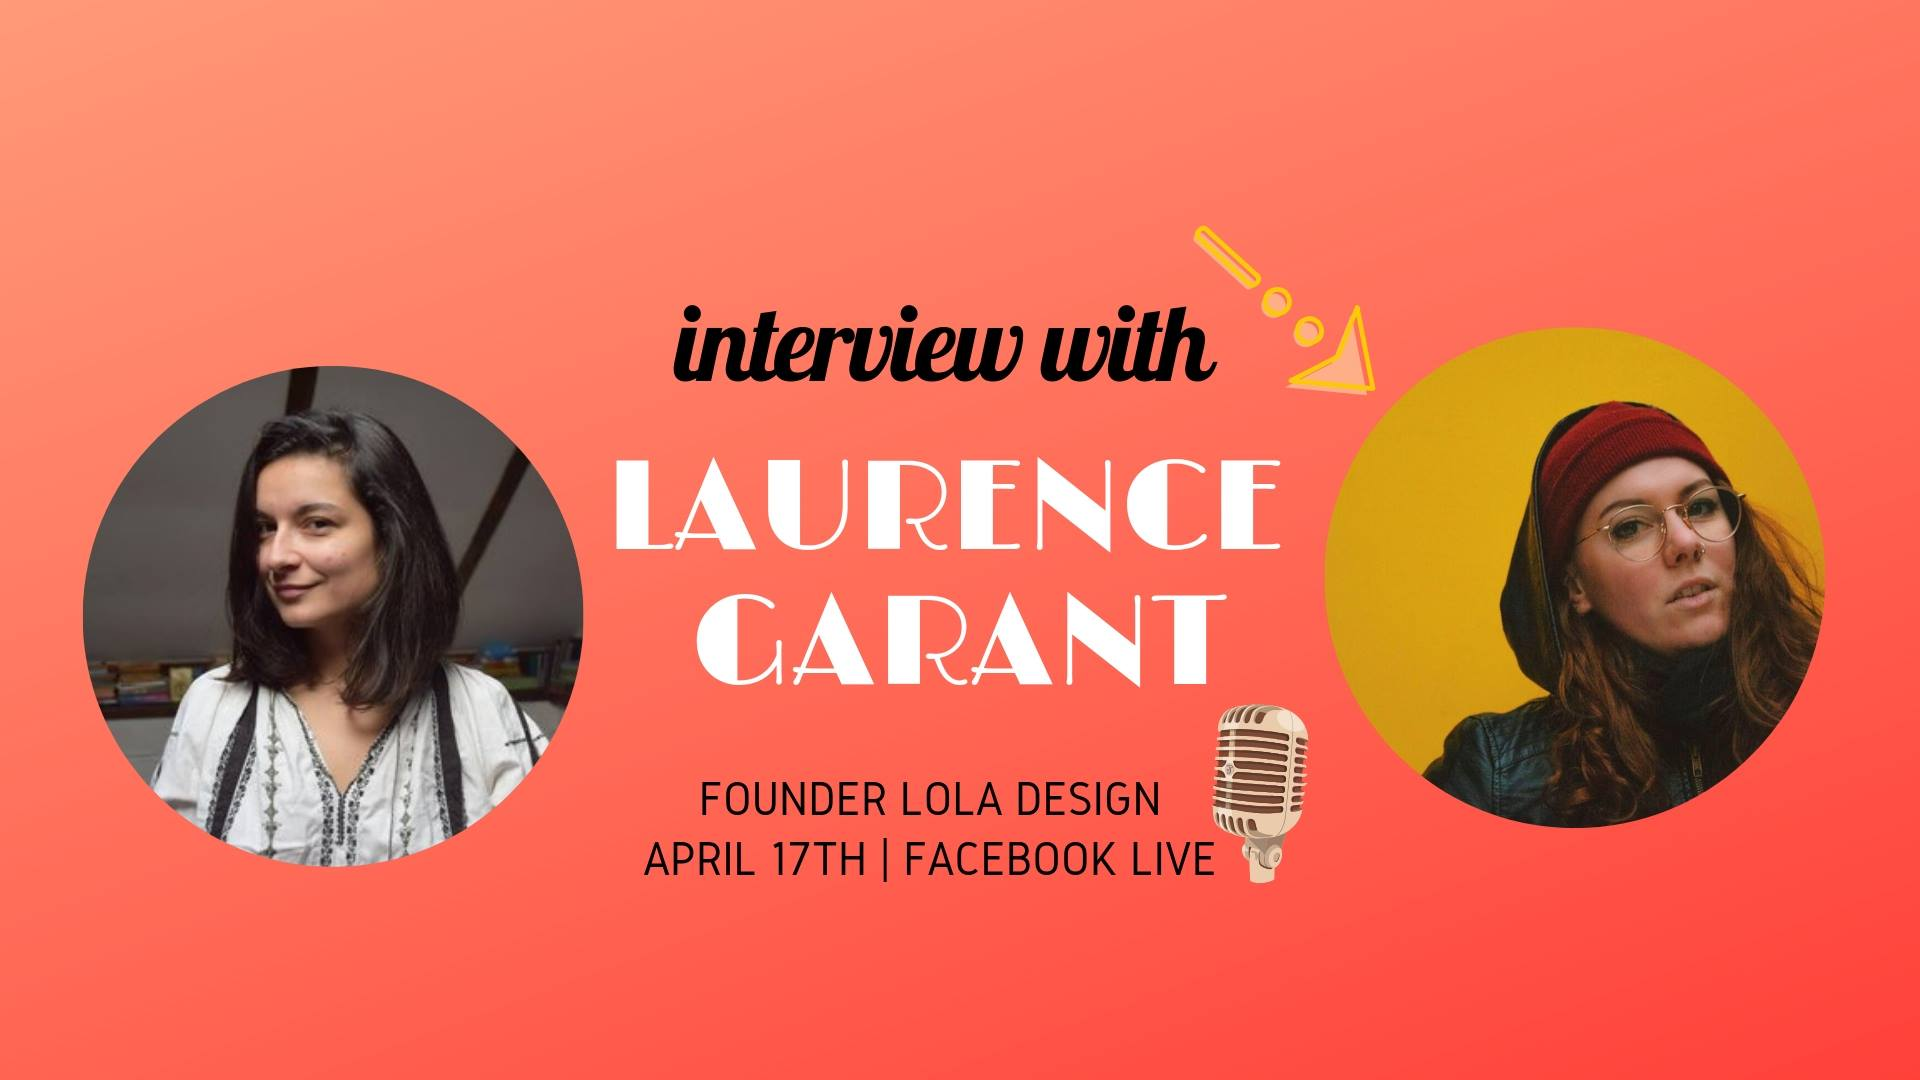 About Branding, Cats, and Entrepreneurship with Laurence Garant, Branding Specialist & Coach -  Click for the interview  #visibilitycoach #interviews #femaleentrepreneurs #girlboss #branding